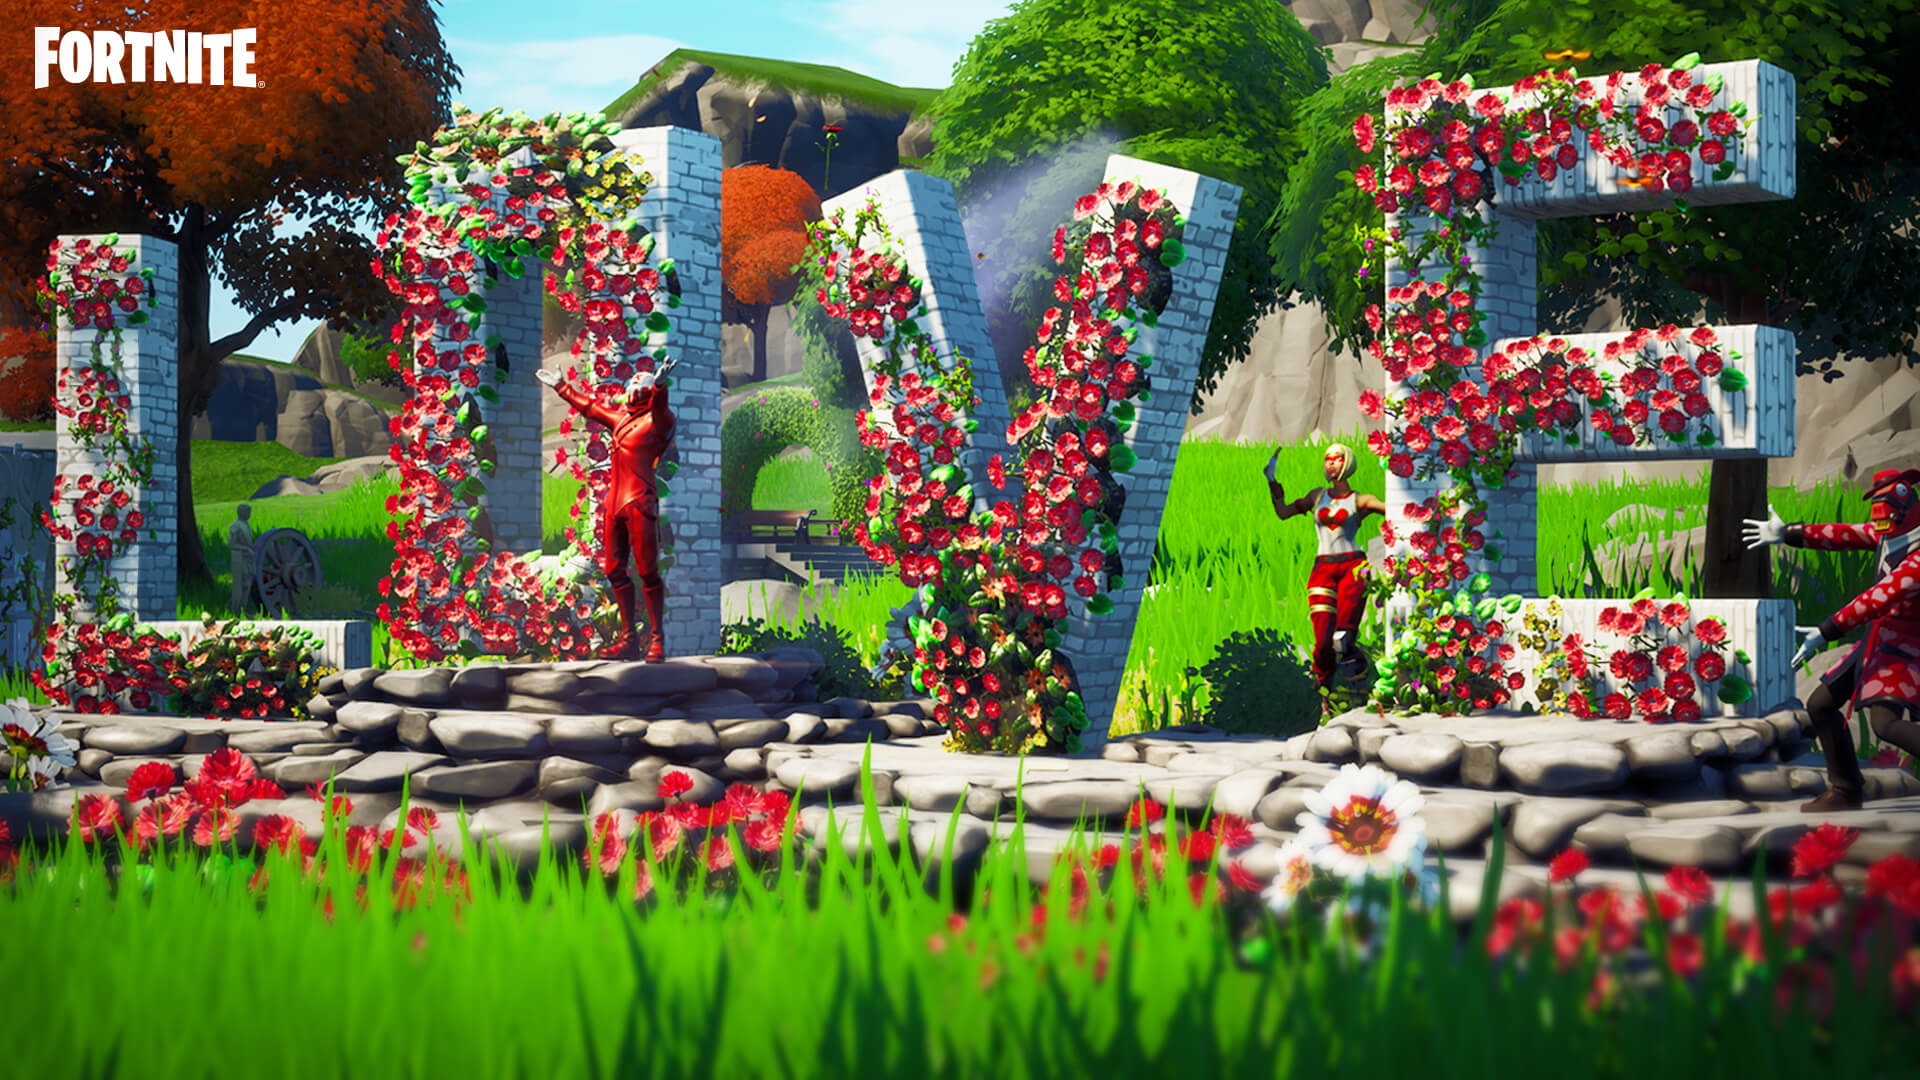 Fortnite Creative Valentine's Featured Hub